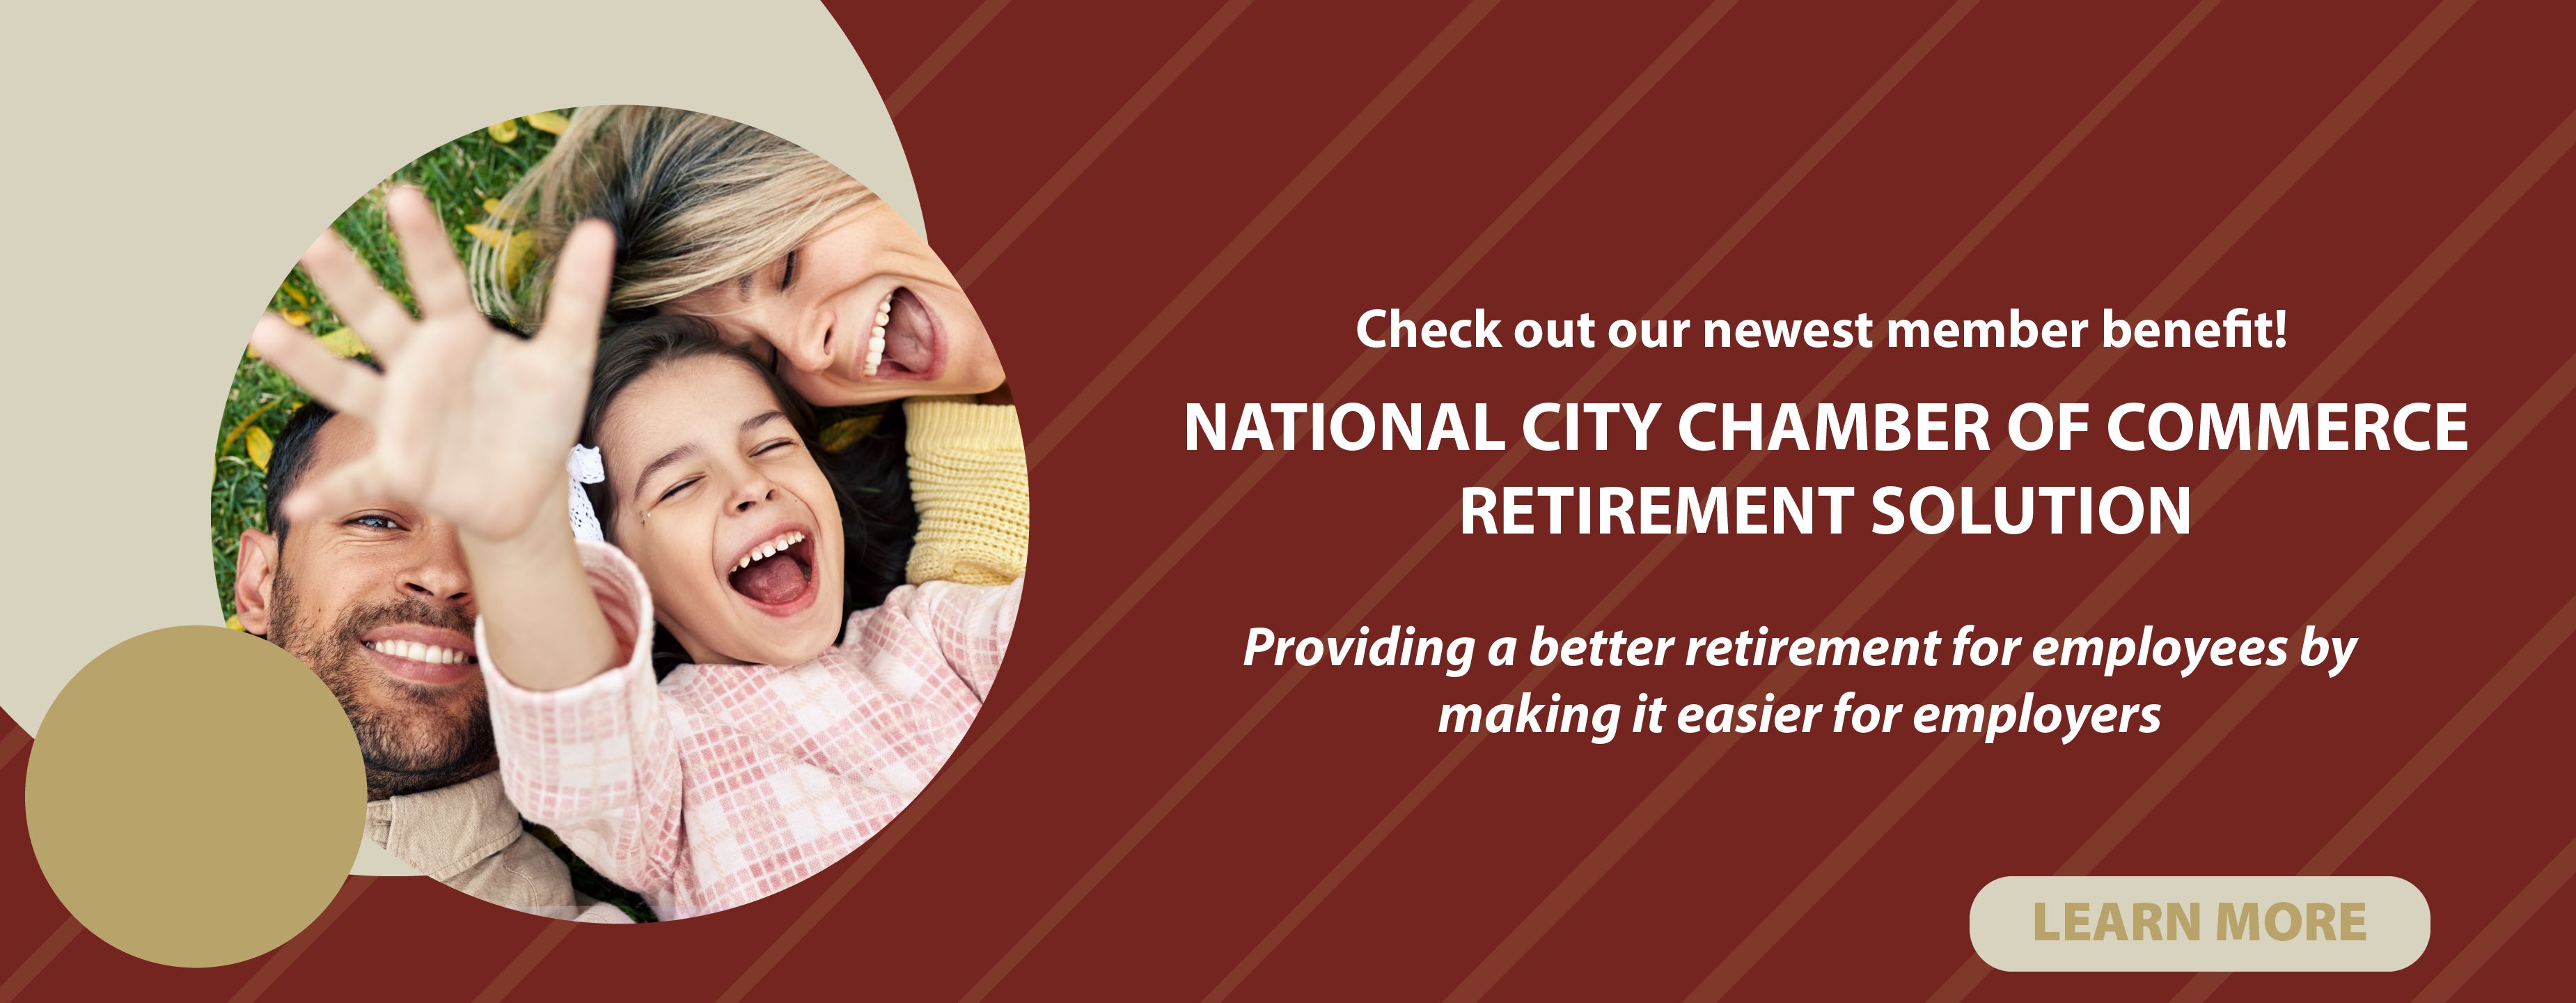 retiready-web-banner.png